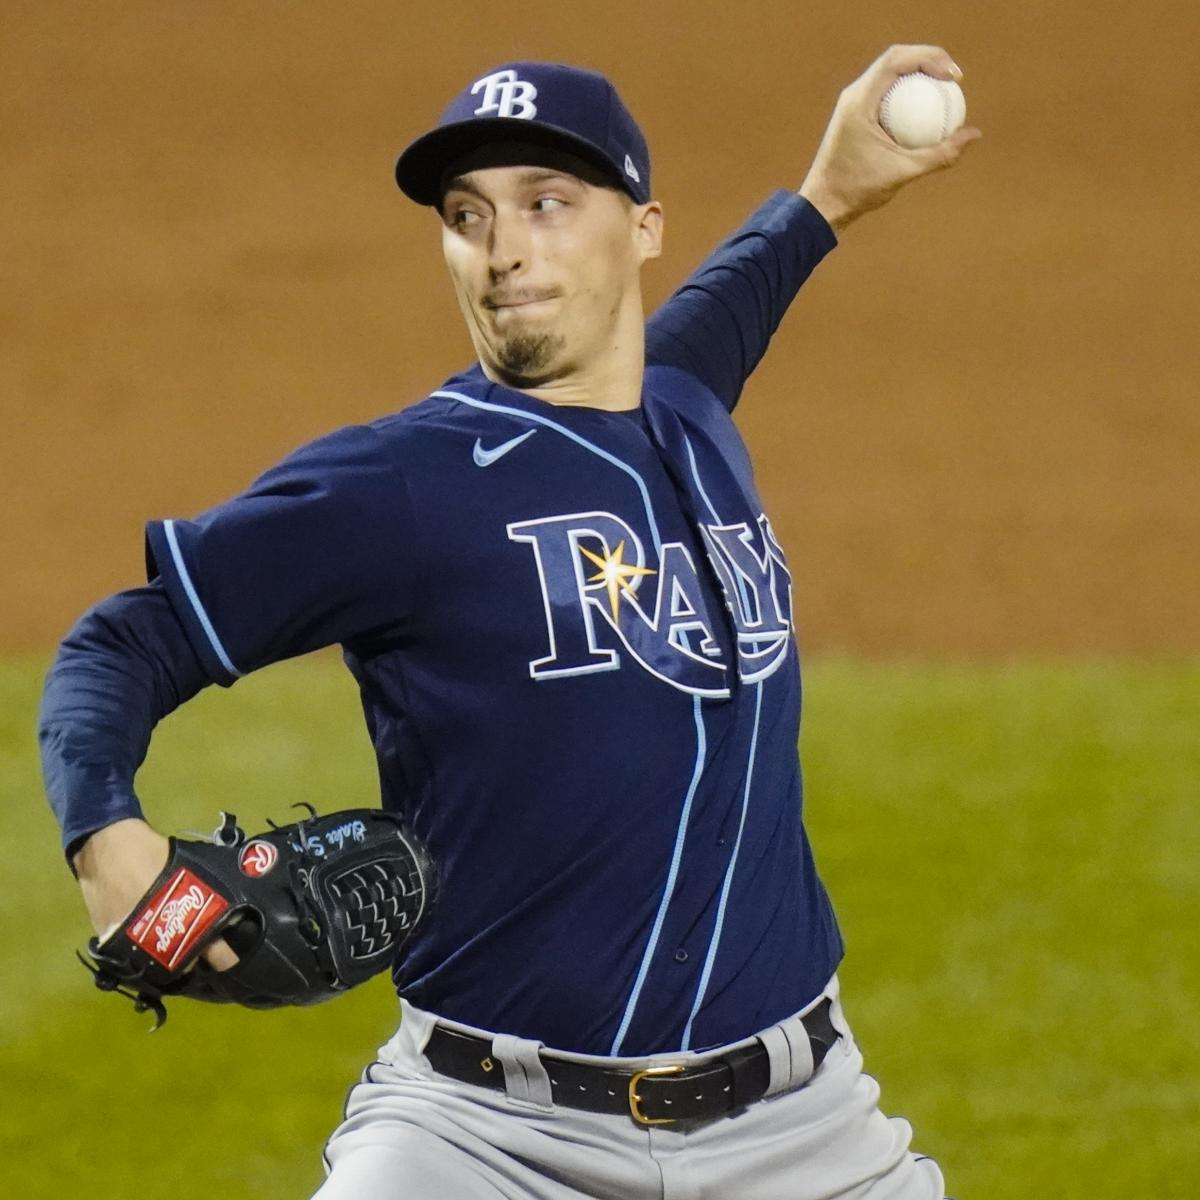 Blake Snell Dominates as Rays Beat Blue Jays 3-1 in Game 1 of Wild Card Series